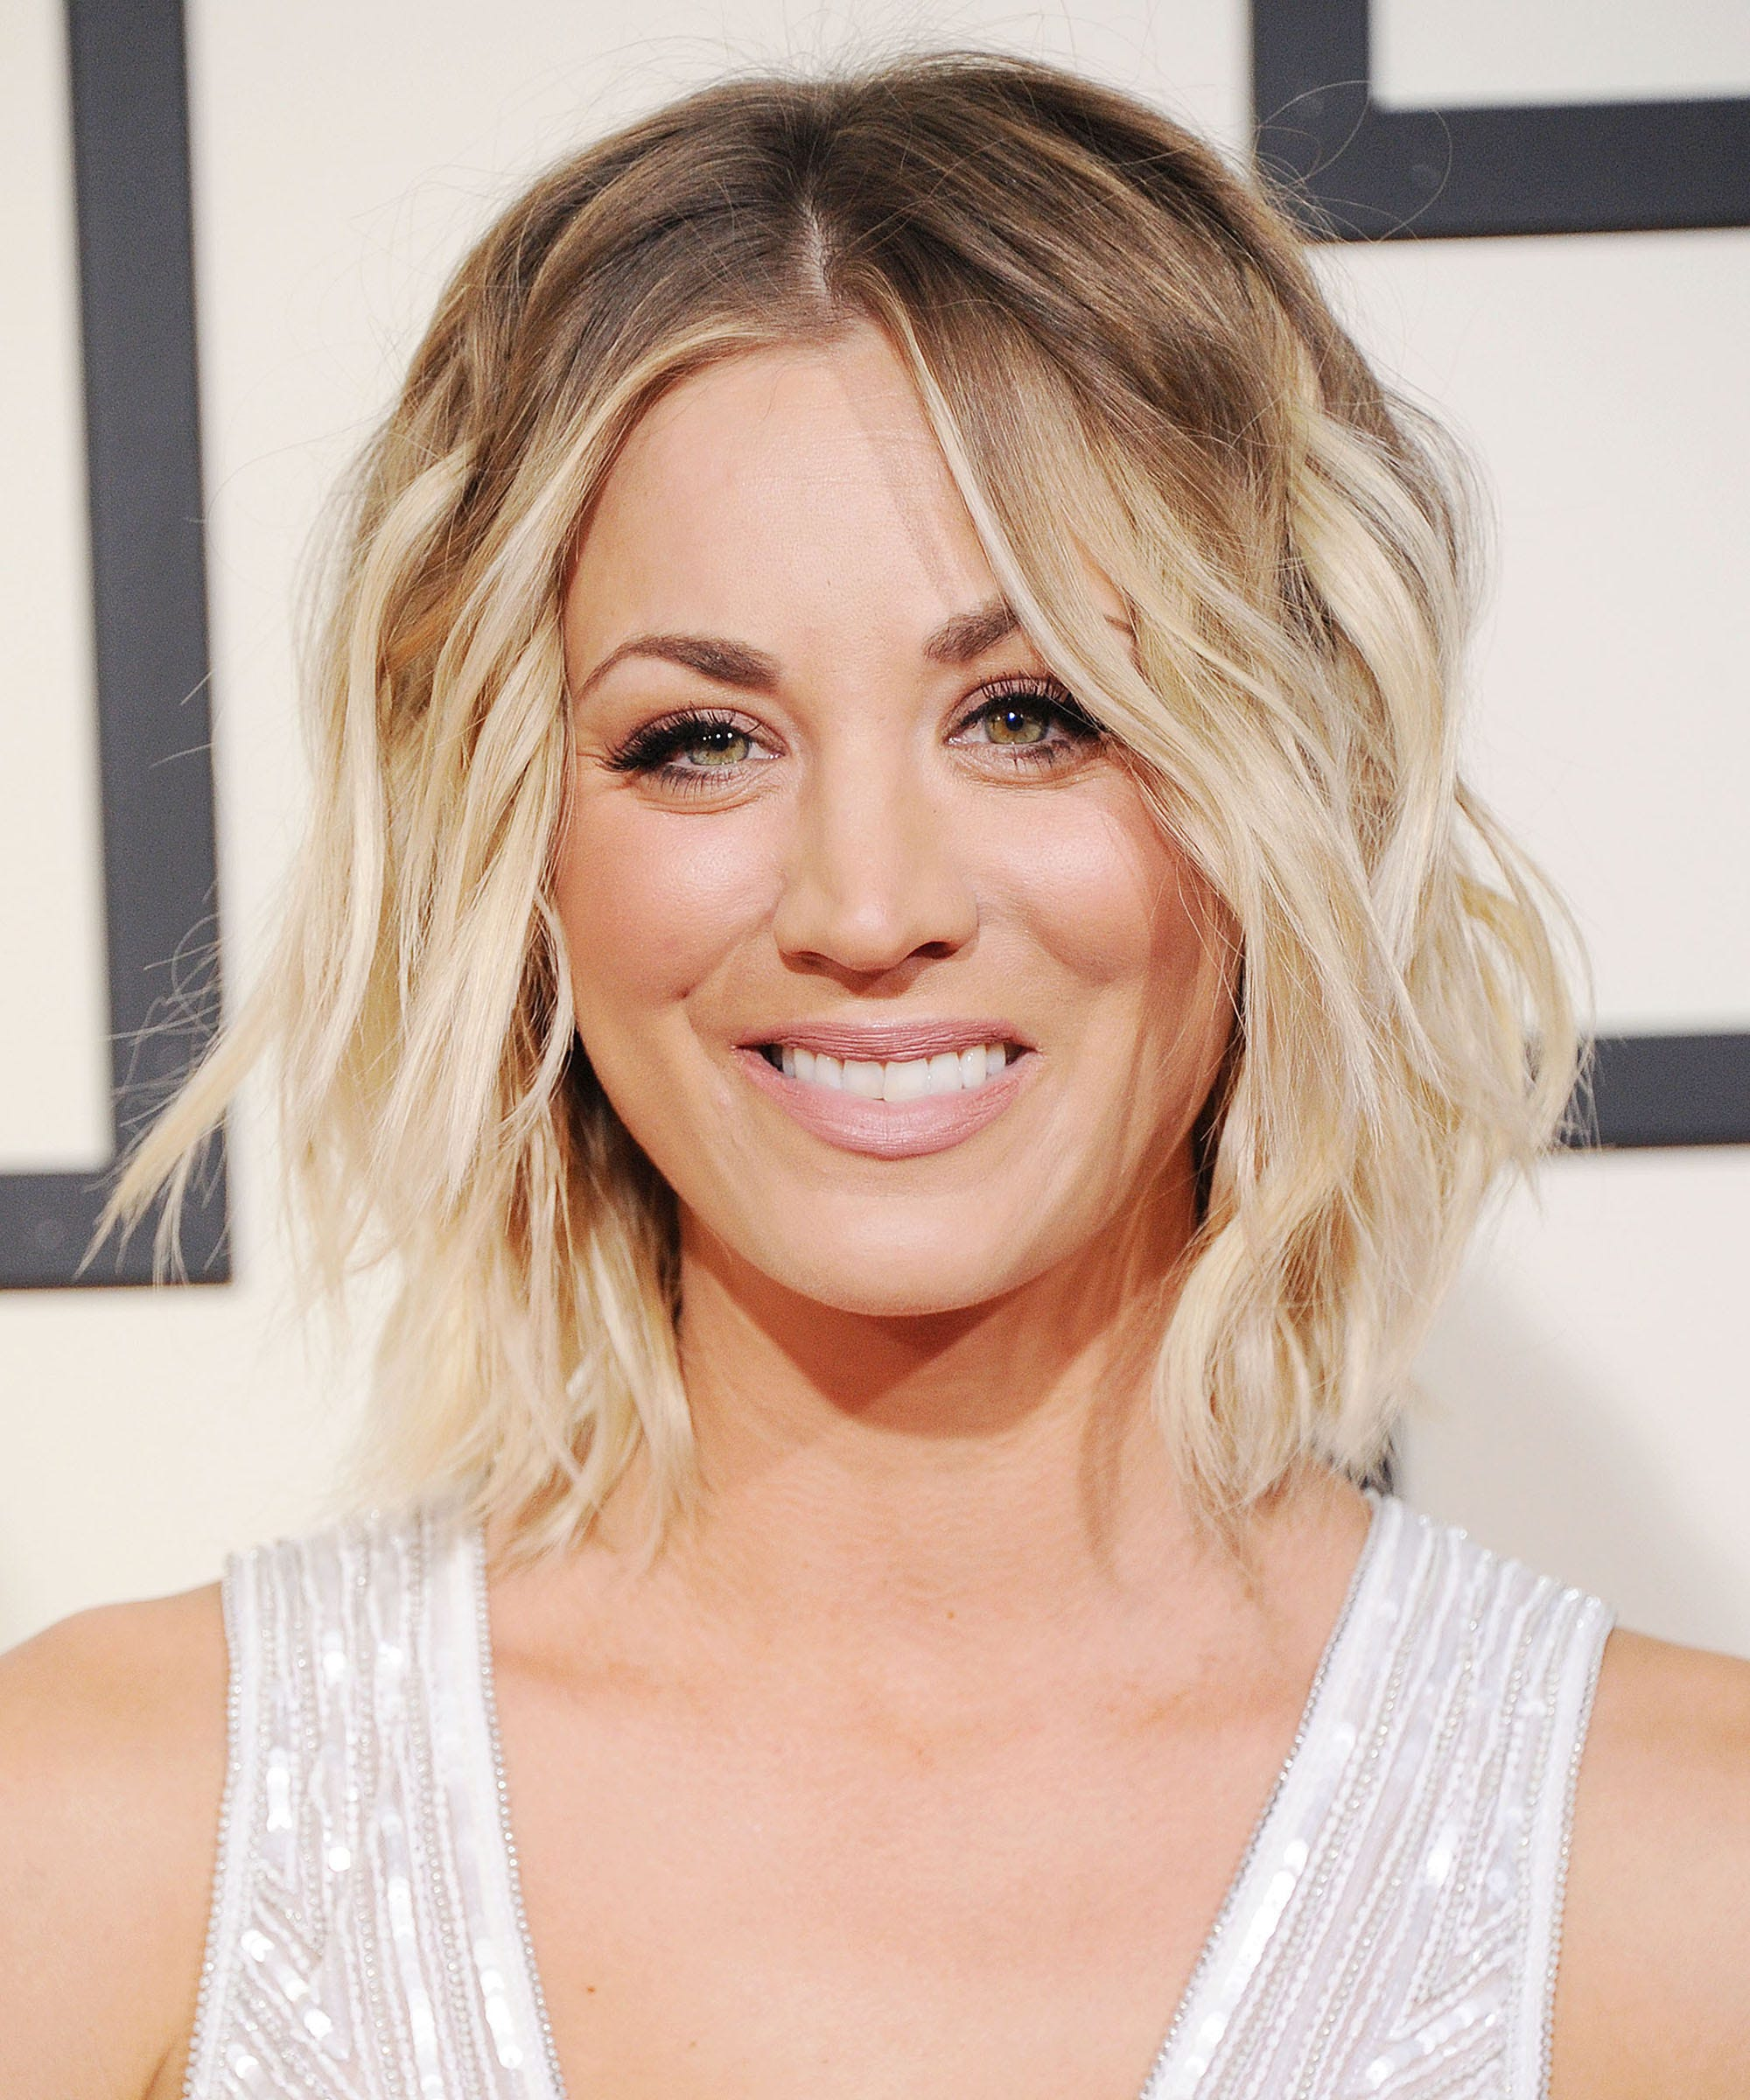 Kaley Cuoco Feminist Baby Talk Cosmo April 2016